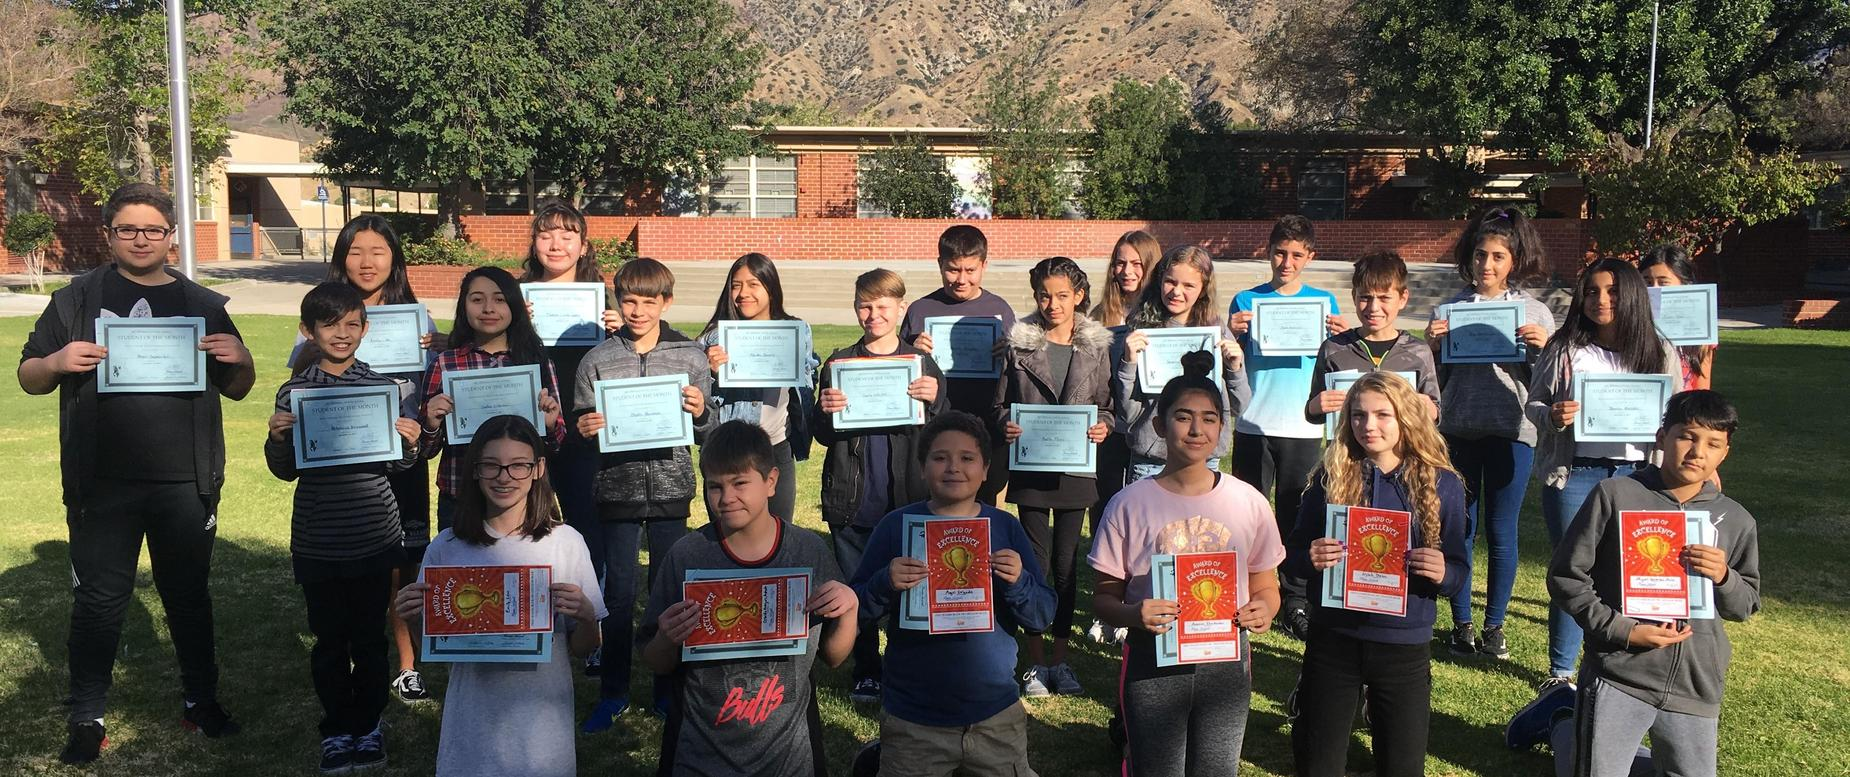 November/December 2017 Students of the month